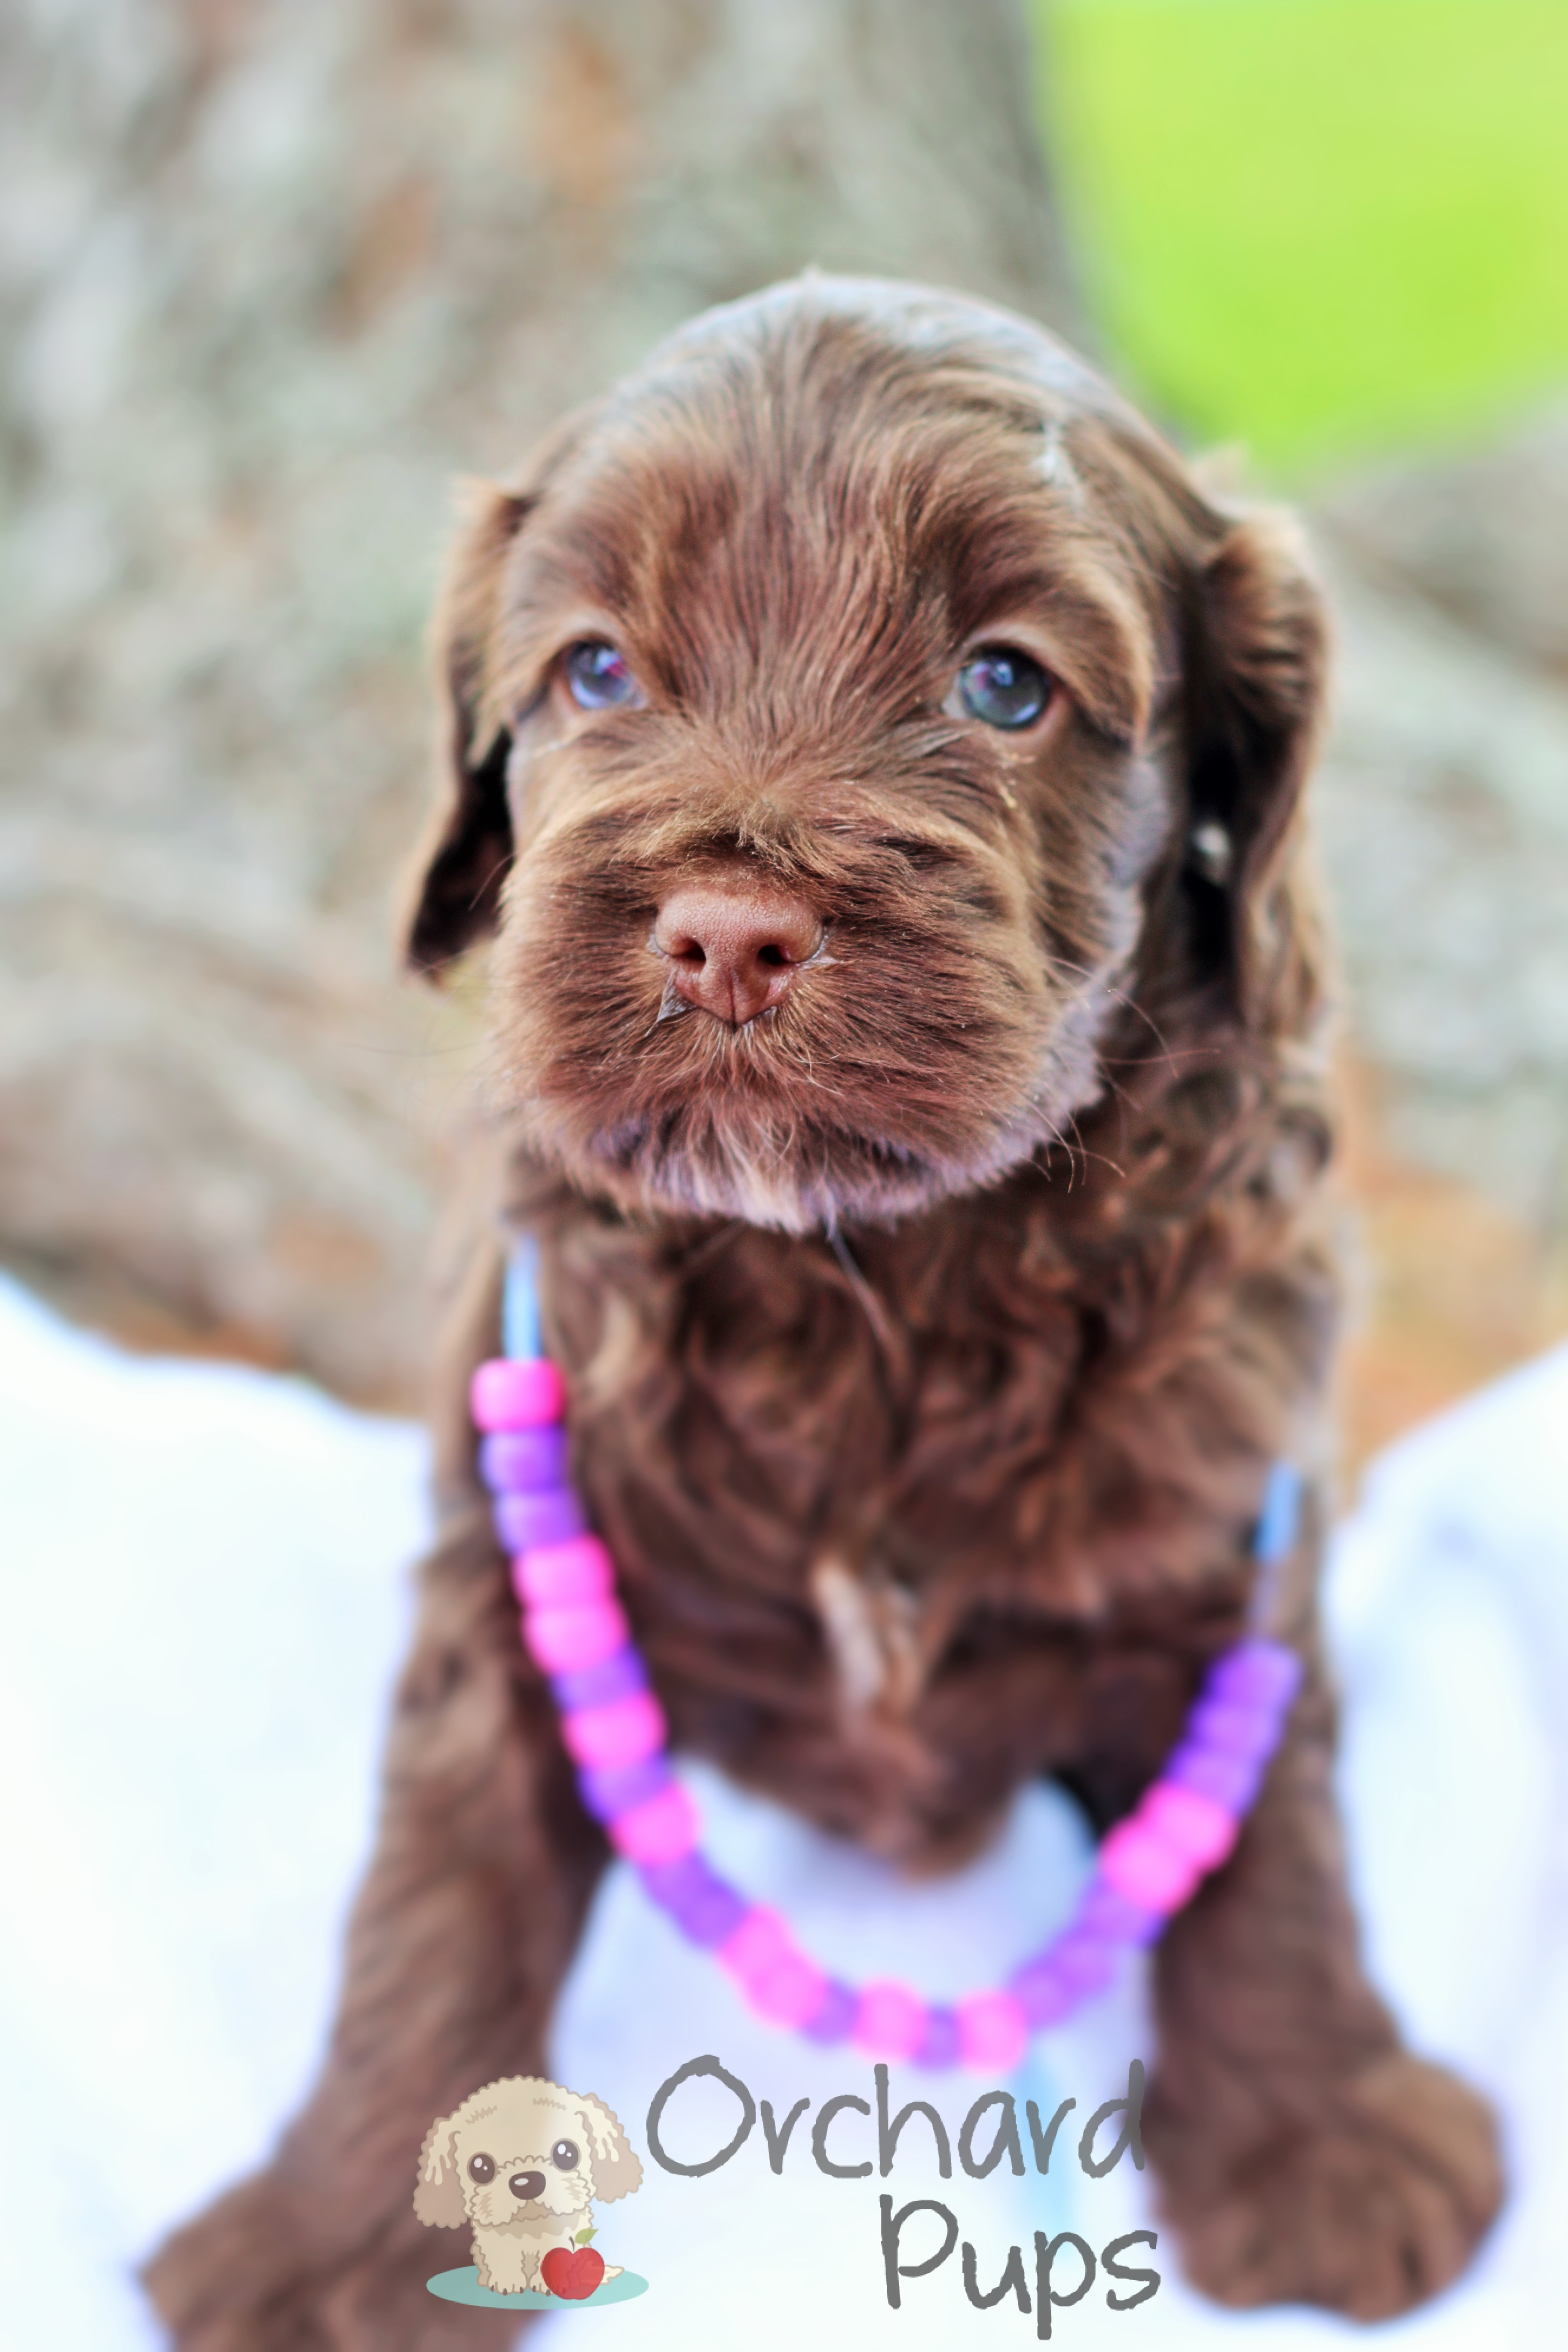 Adopt a Golden-Doodle or Poodle Pup - Orchard Pups - Orchard